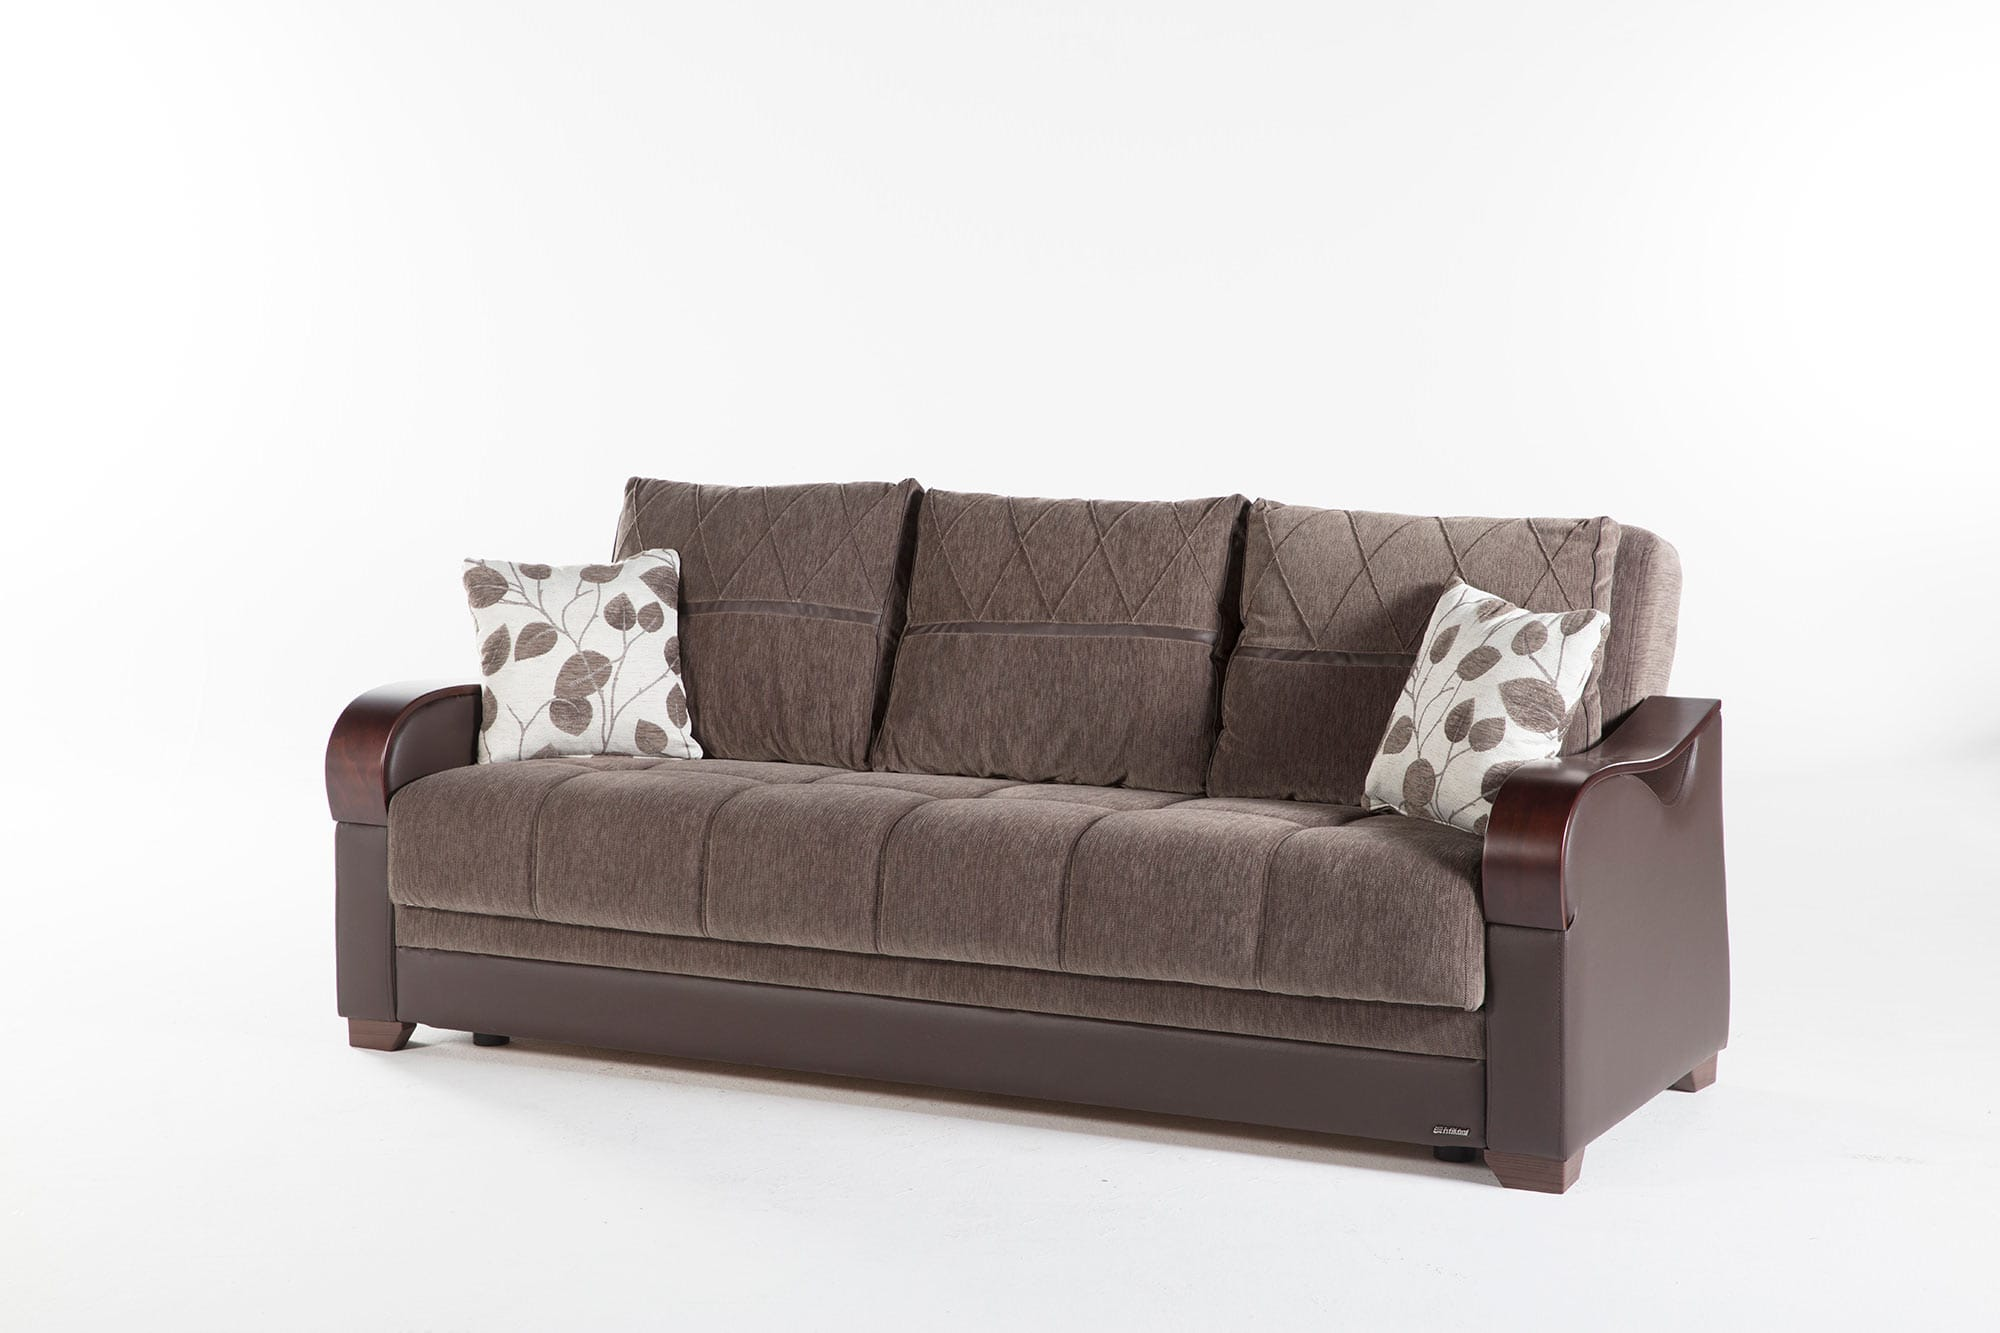 Awe Inspiring Bennett Armoni Brown Convertible Sofa Bed By Istikbal Furniture Gamerscity Chair Design For Home Gamerscityorg